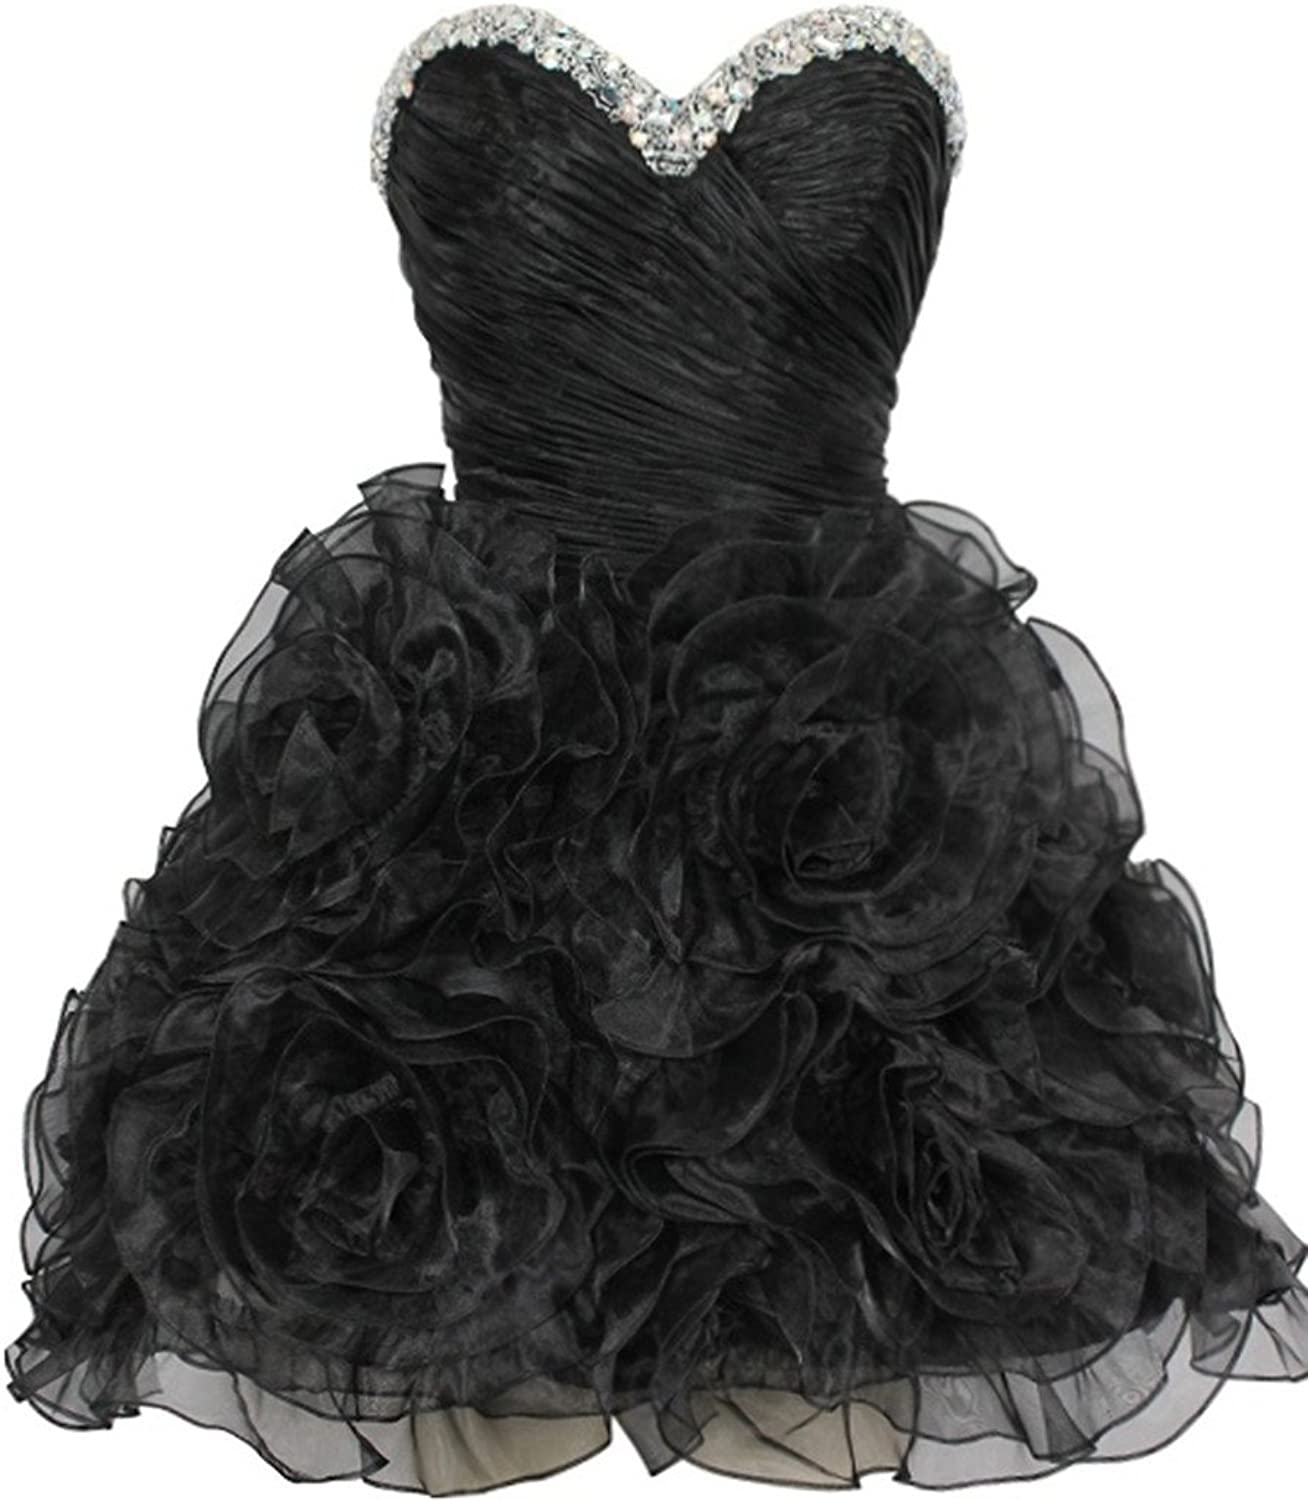 Lowime Women's Sweetheart Twirl Organza Short Homecoming Prom Cocktail Dresses Size 10 US Black